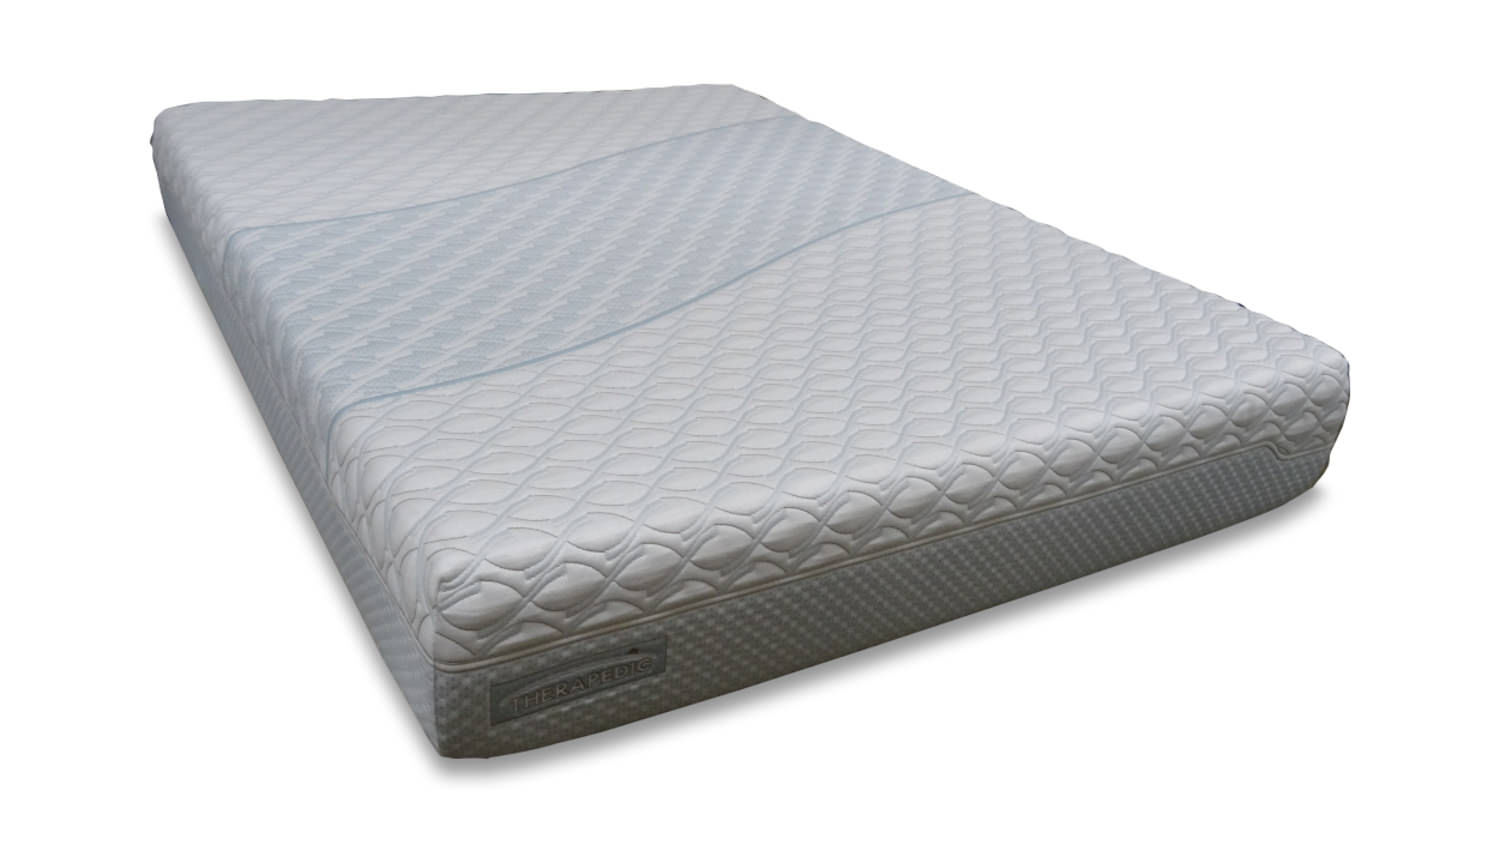 Memory Foam Mattress Guide American Made Memory Foam Mattresses On Sale Today S Deal